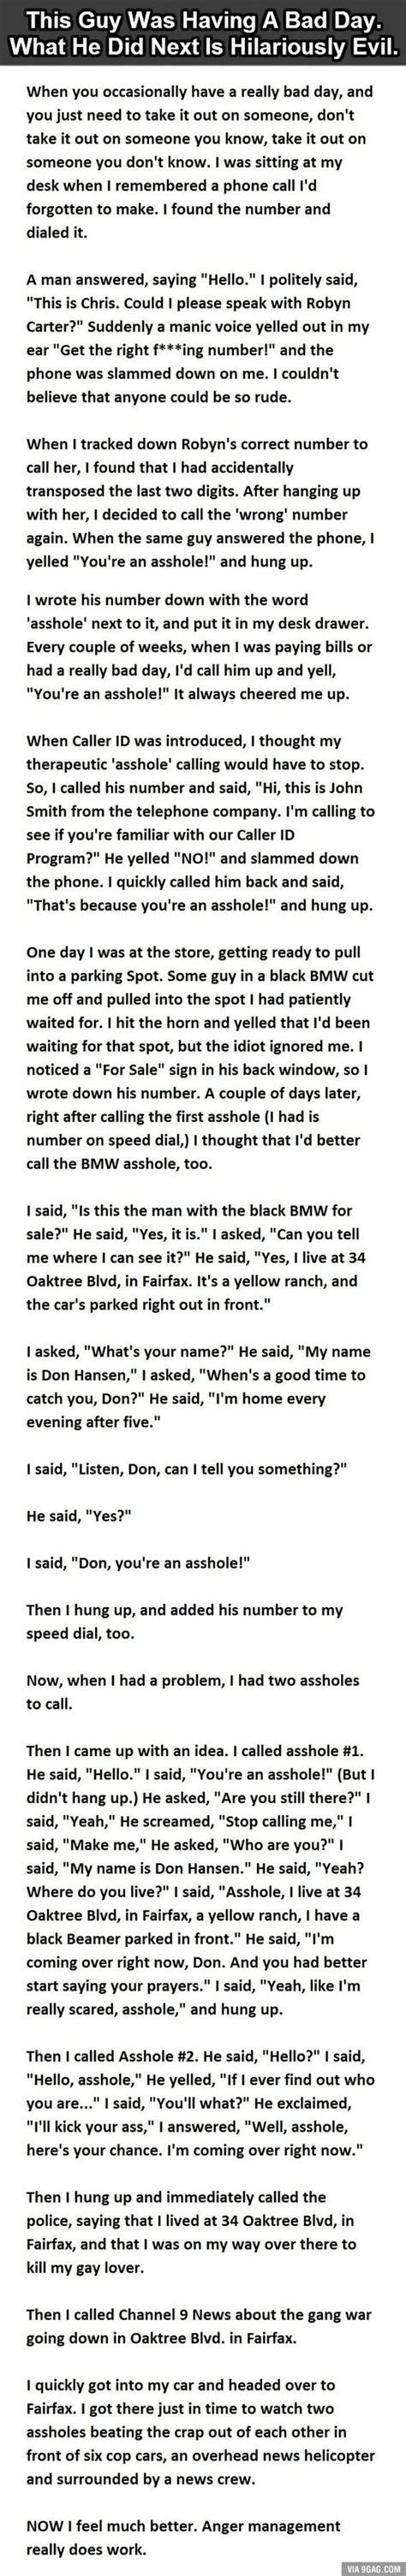 most of all you a story top 20 most stories of all time quotes and humor